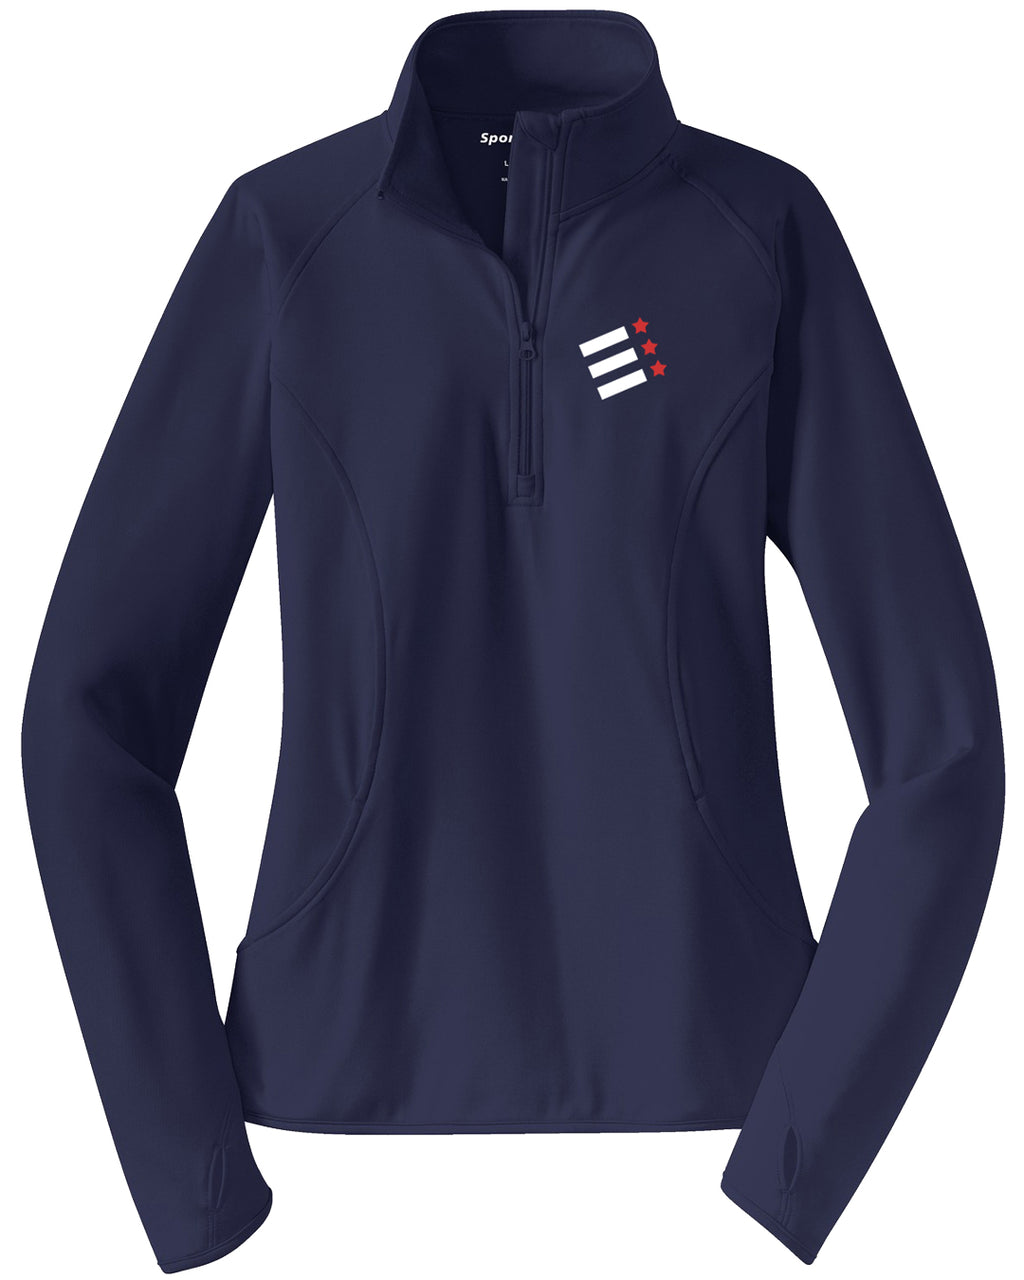 Rock Creek Rowing Ladies Performance Pullover w/ Thumbhole